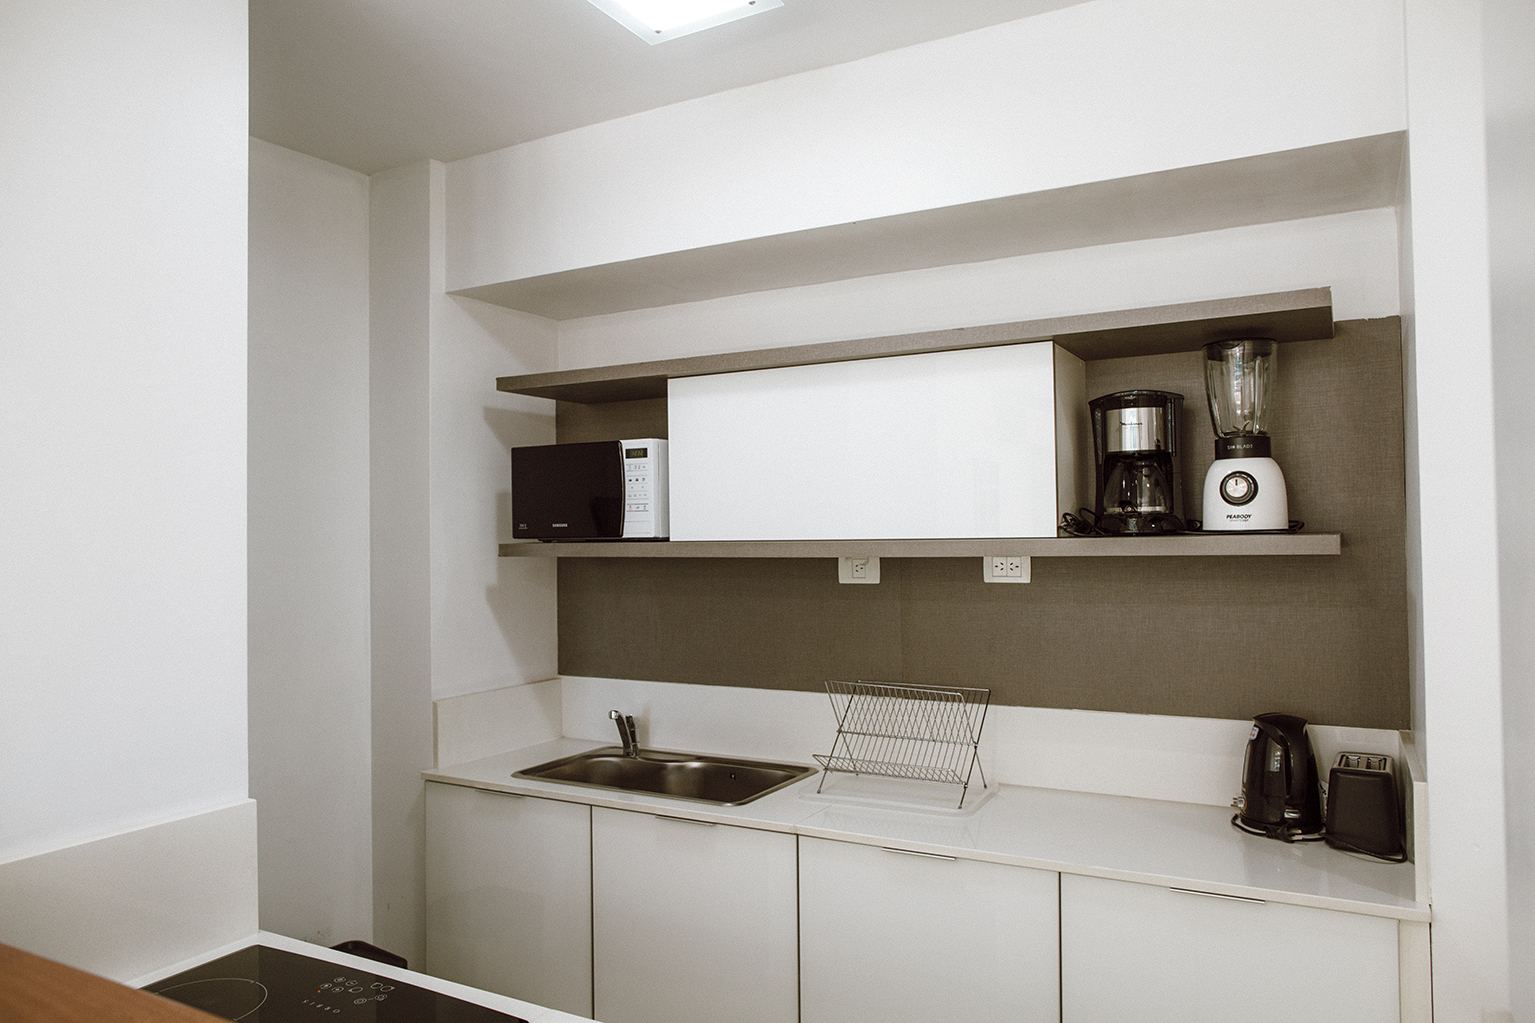 Kitchen at Lumiere Apartments